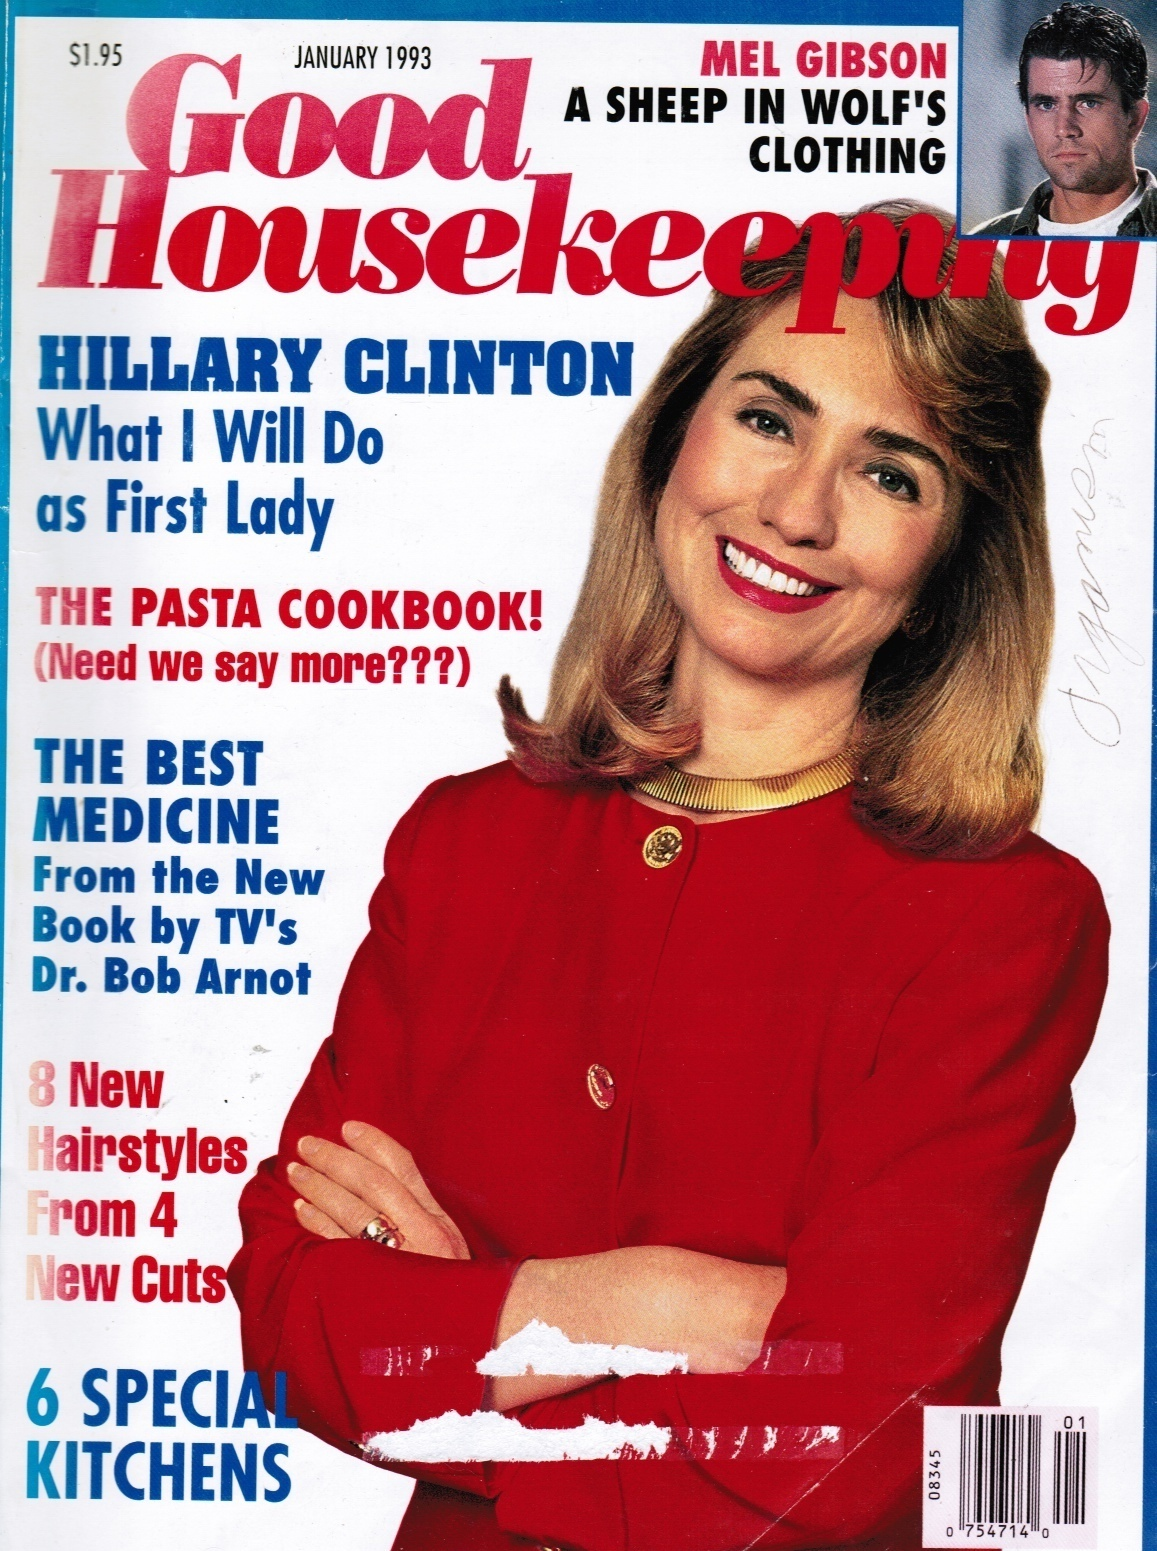 Image for Good Housekeeping Magazine: January 1993 Hillary Clinton: What I Will Do As First Lady